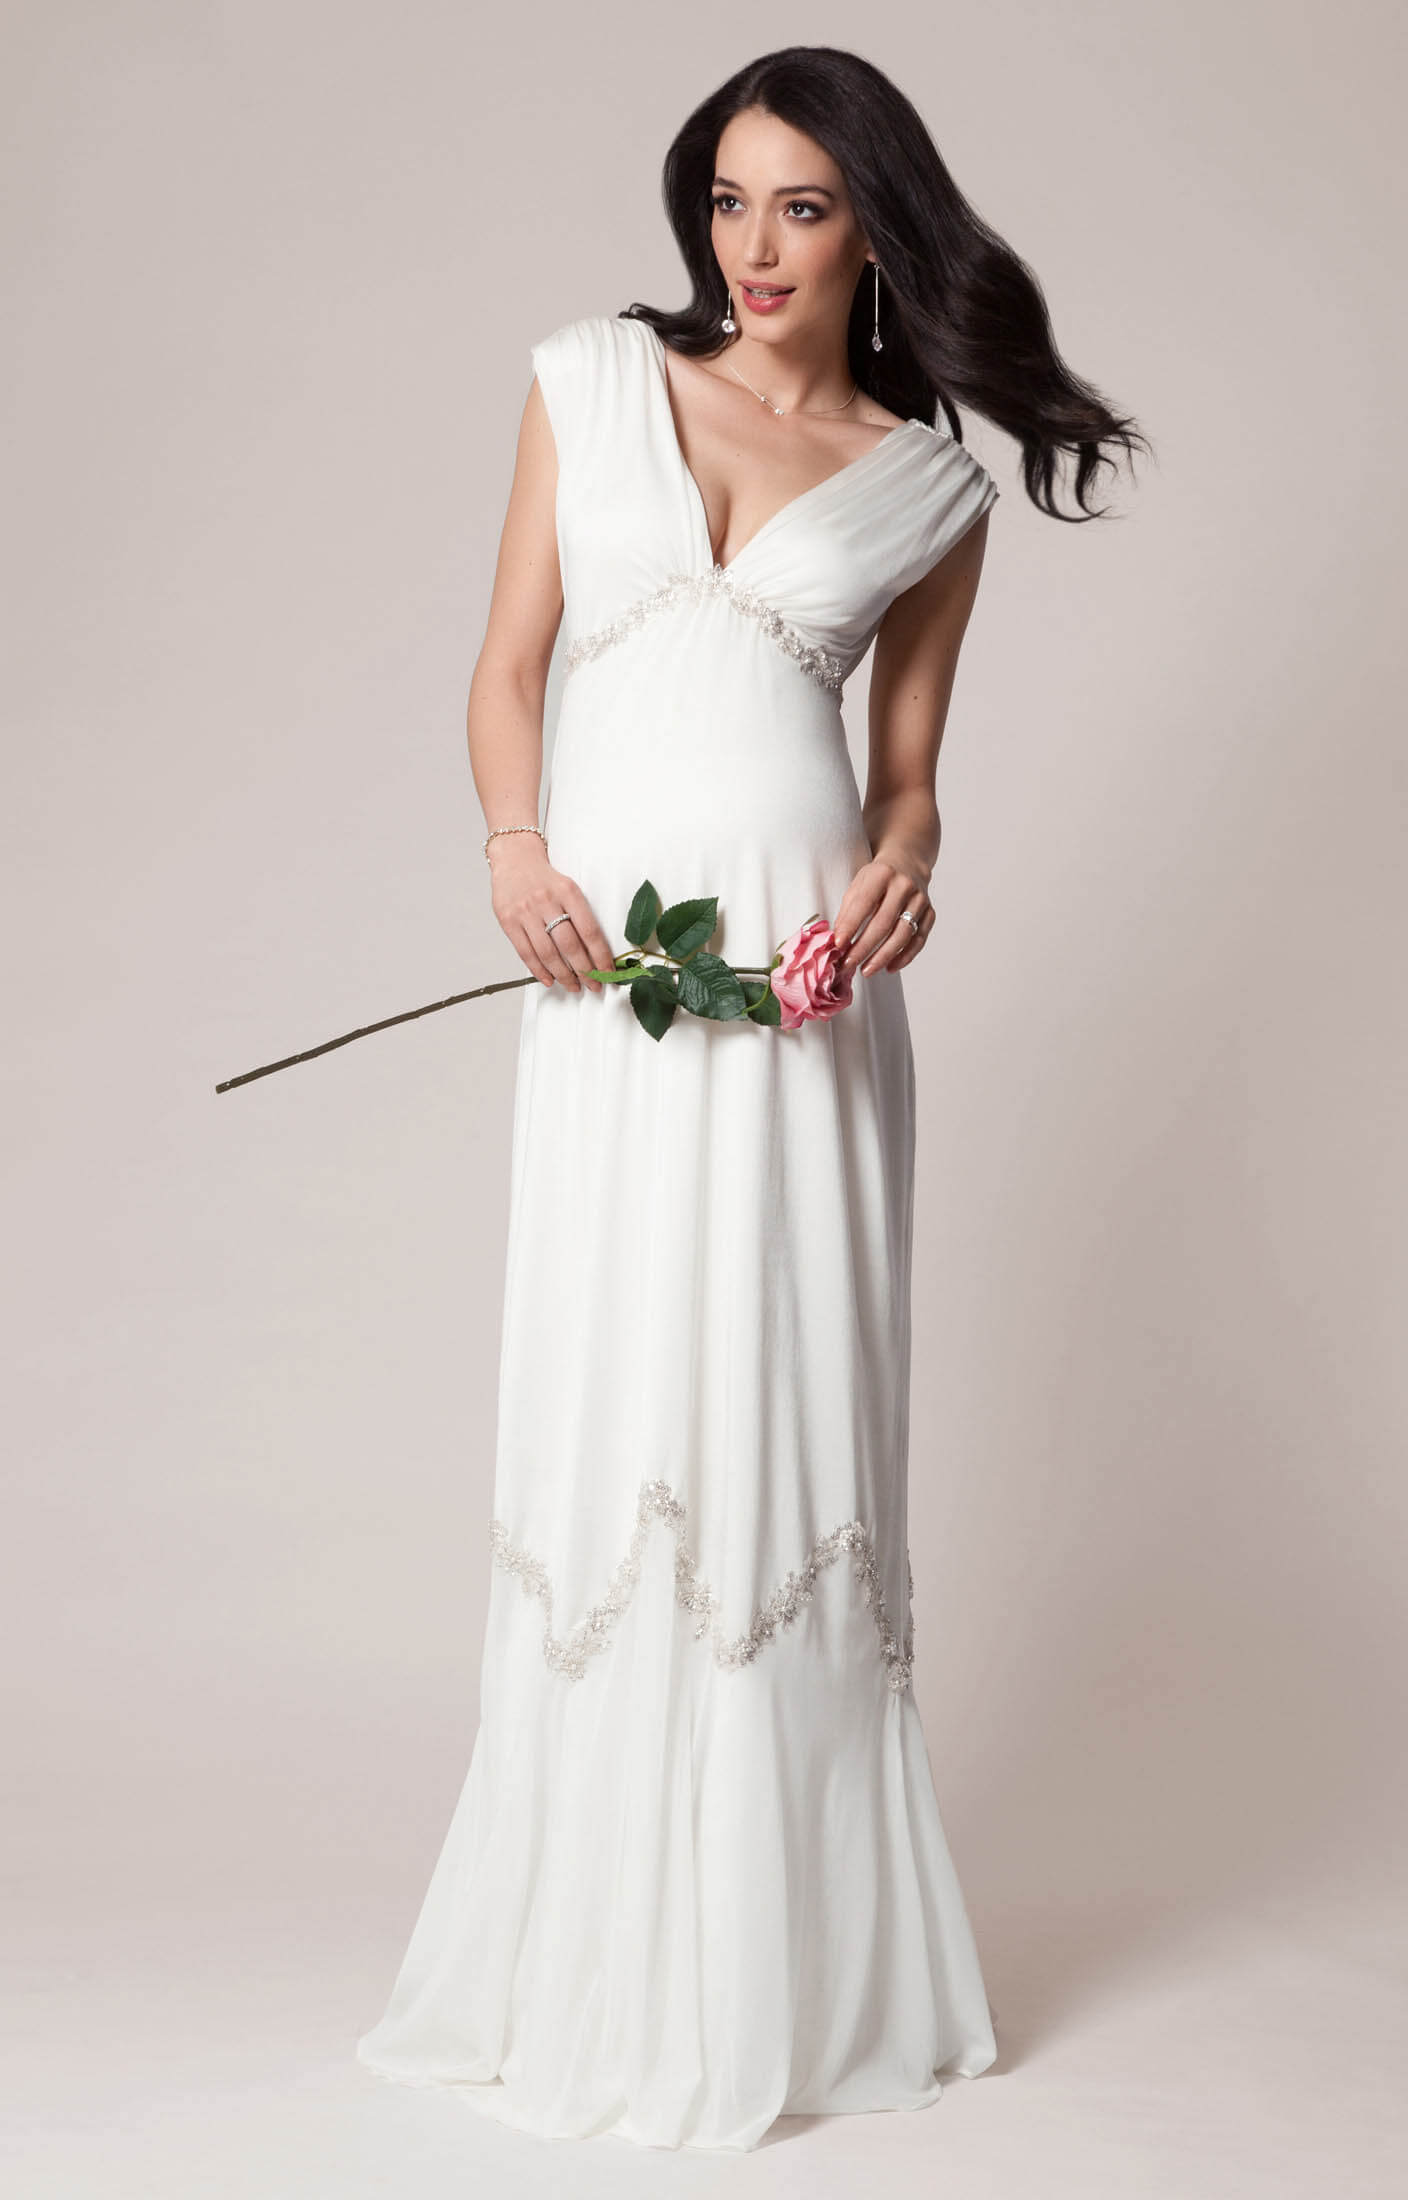 Constellation Maternity Wedding Gown (Ivory) pregnancy wedding dresses Constellation Maternity Wedding Gown Ivory by Tiffany Rose